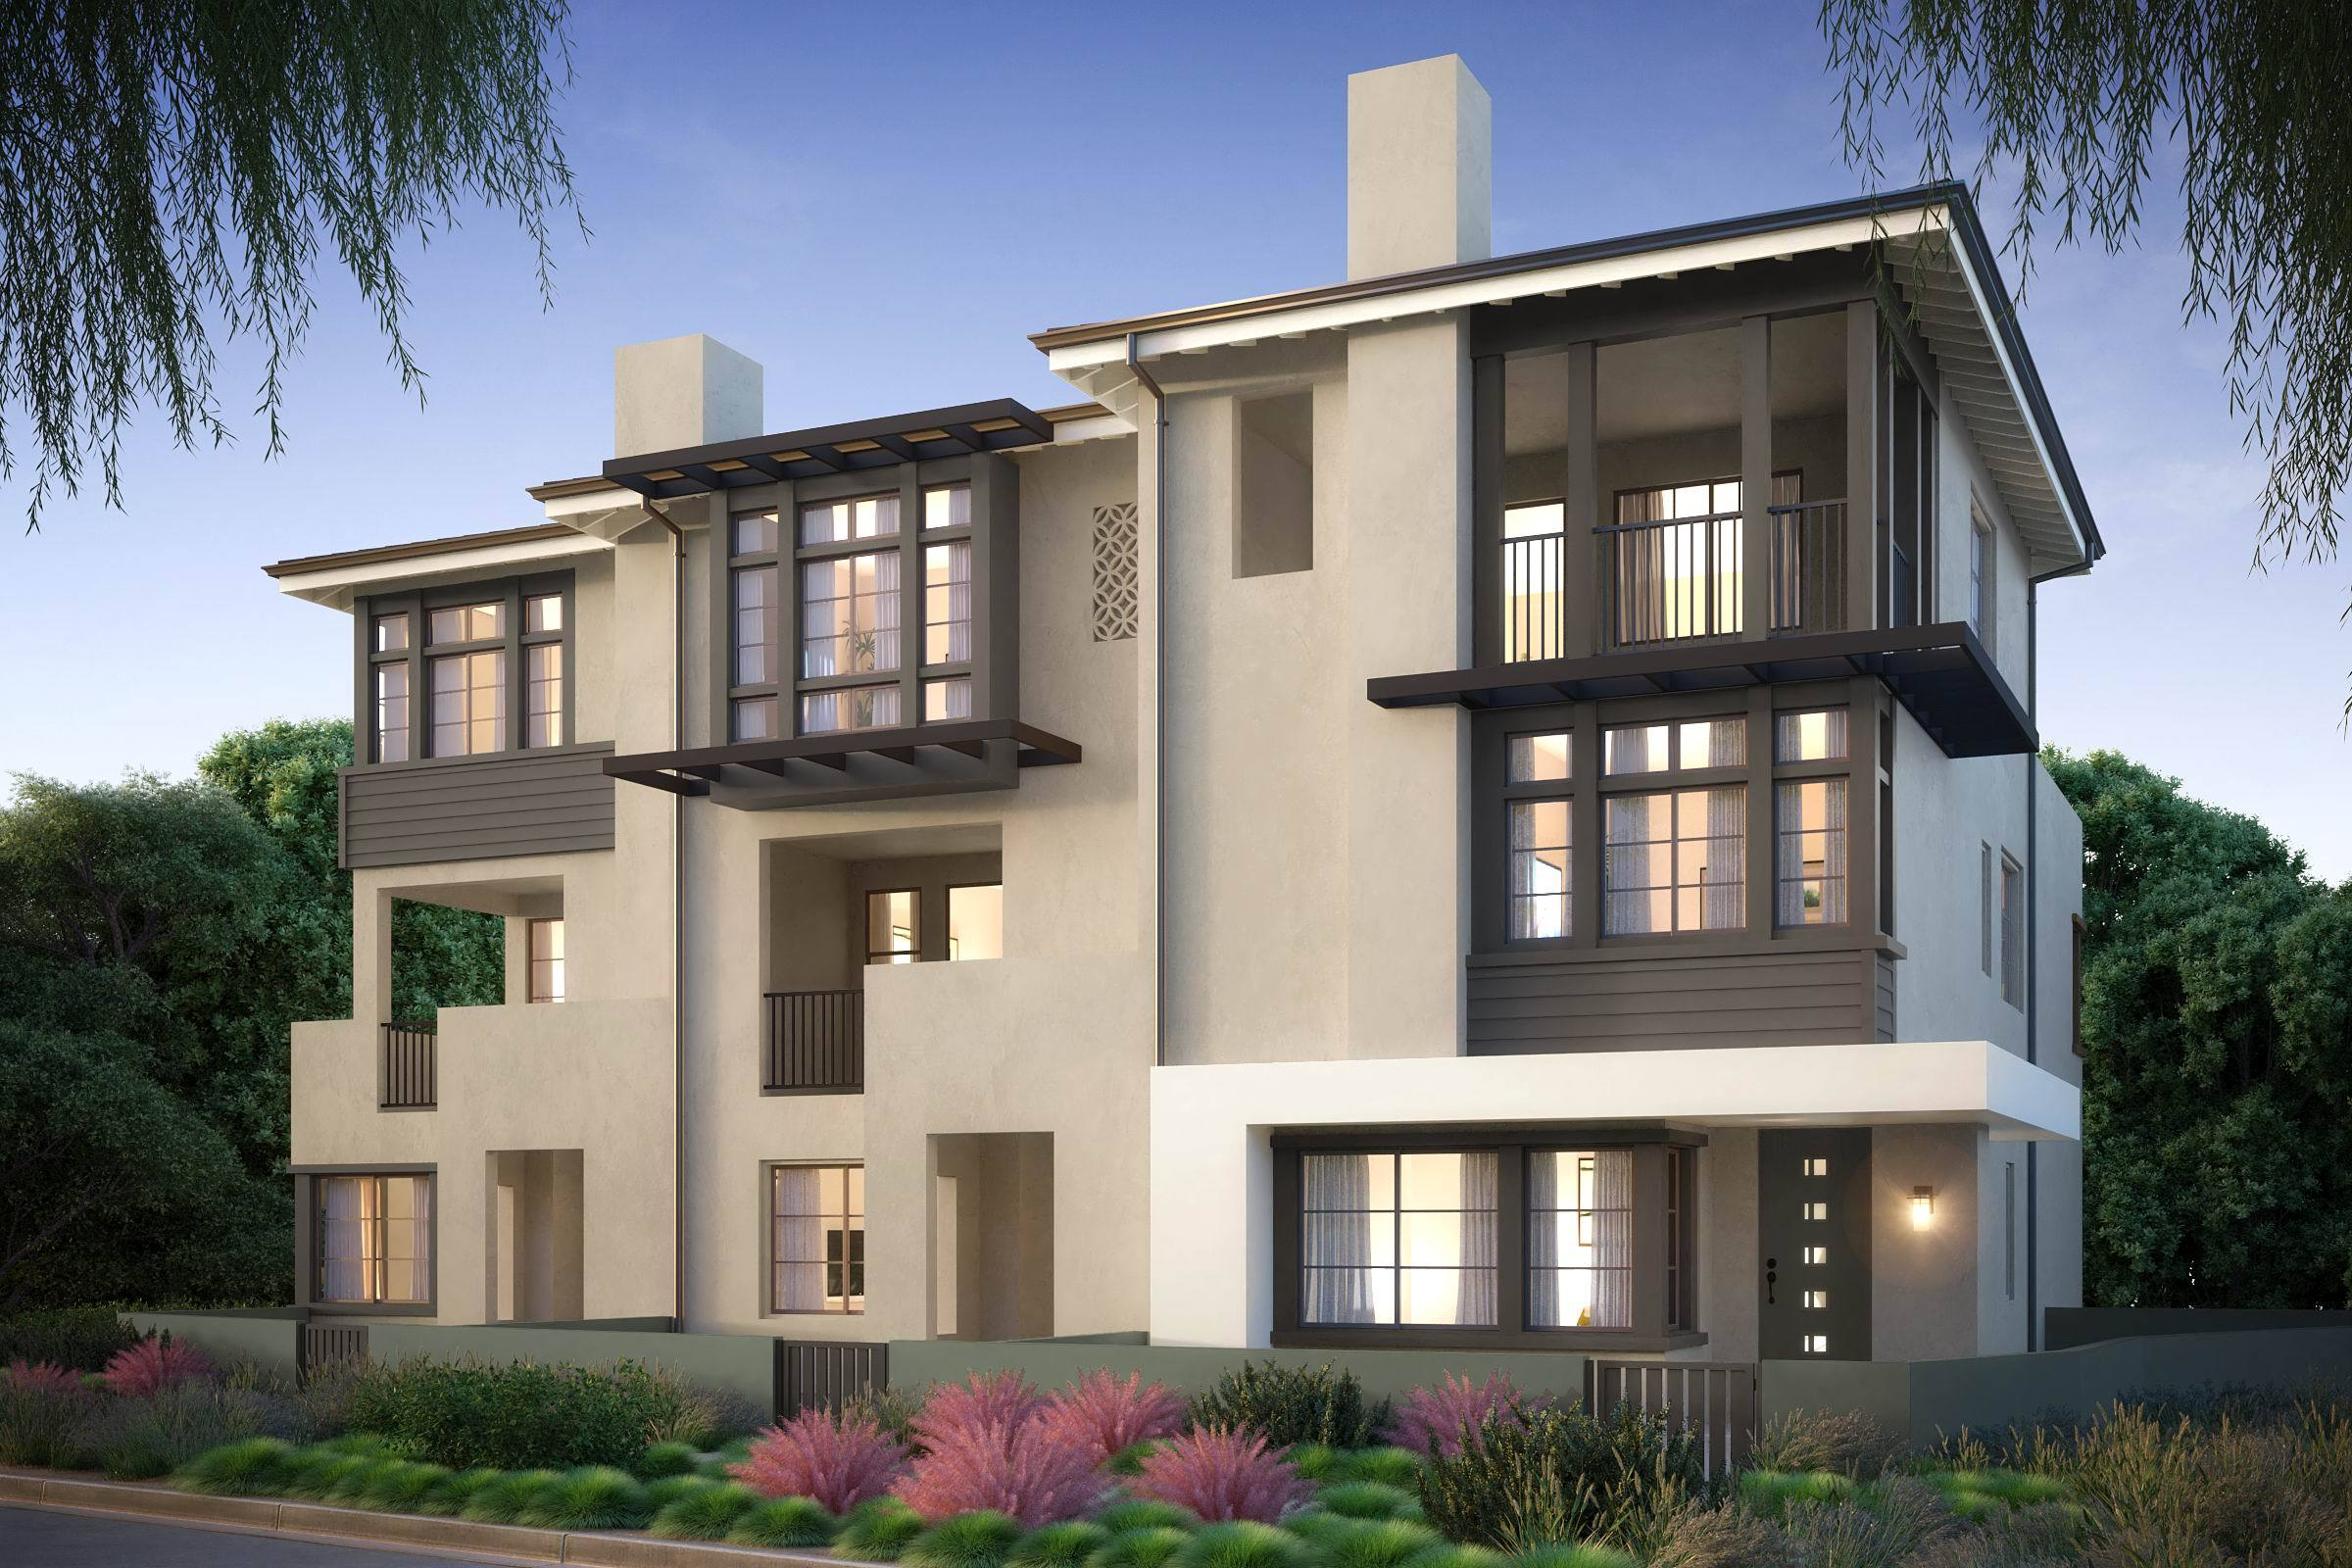 Multi Family for Sale at Muse At Cadence Park - Muse Plan 2 133 Frame Irvine, California 92618 United States